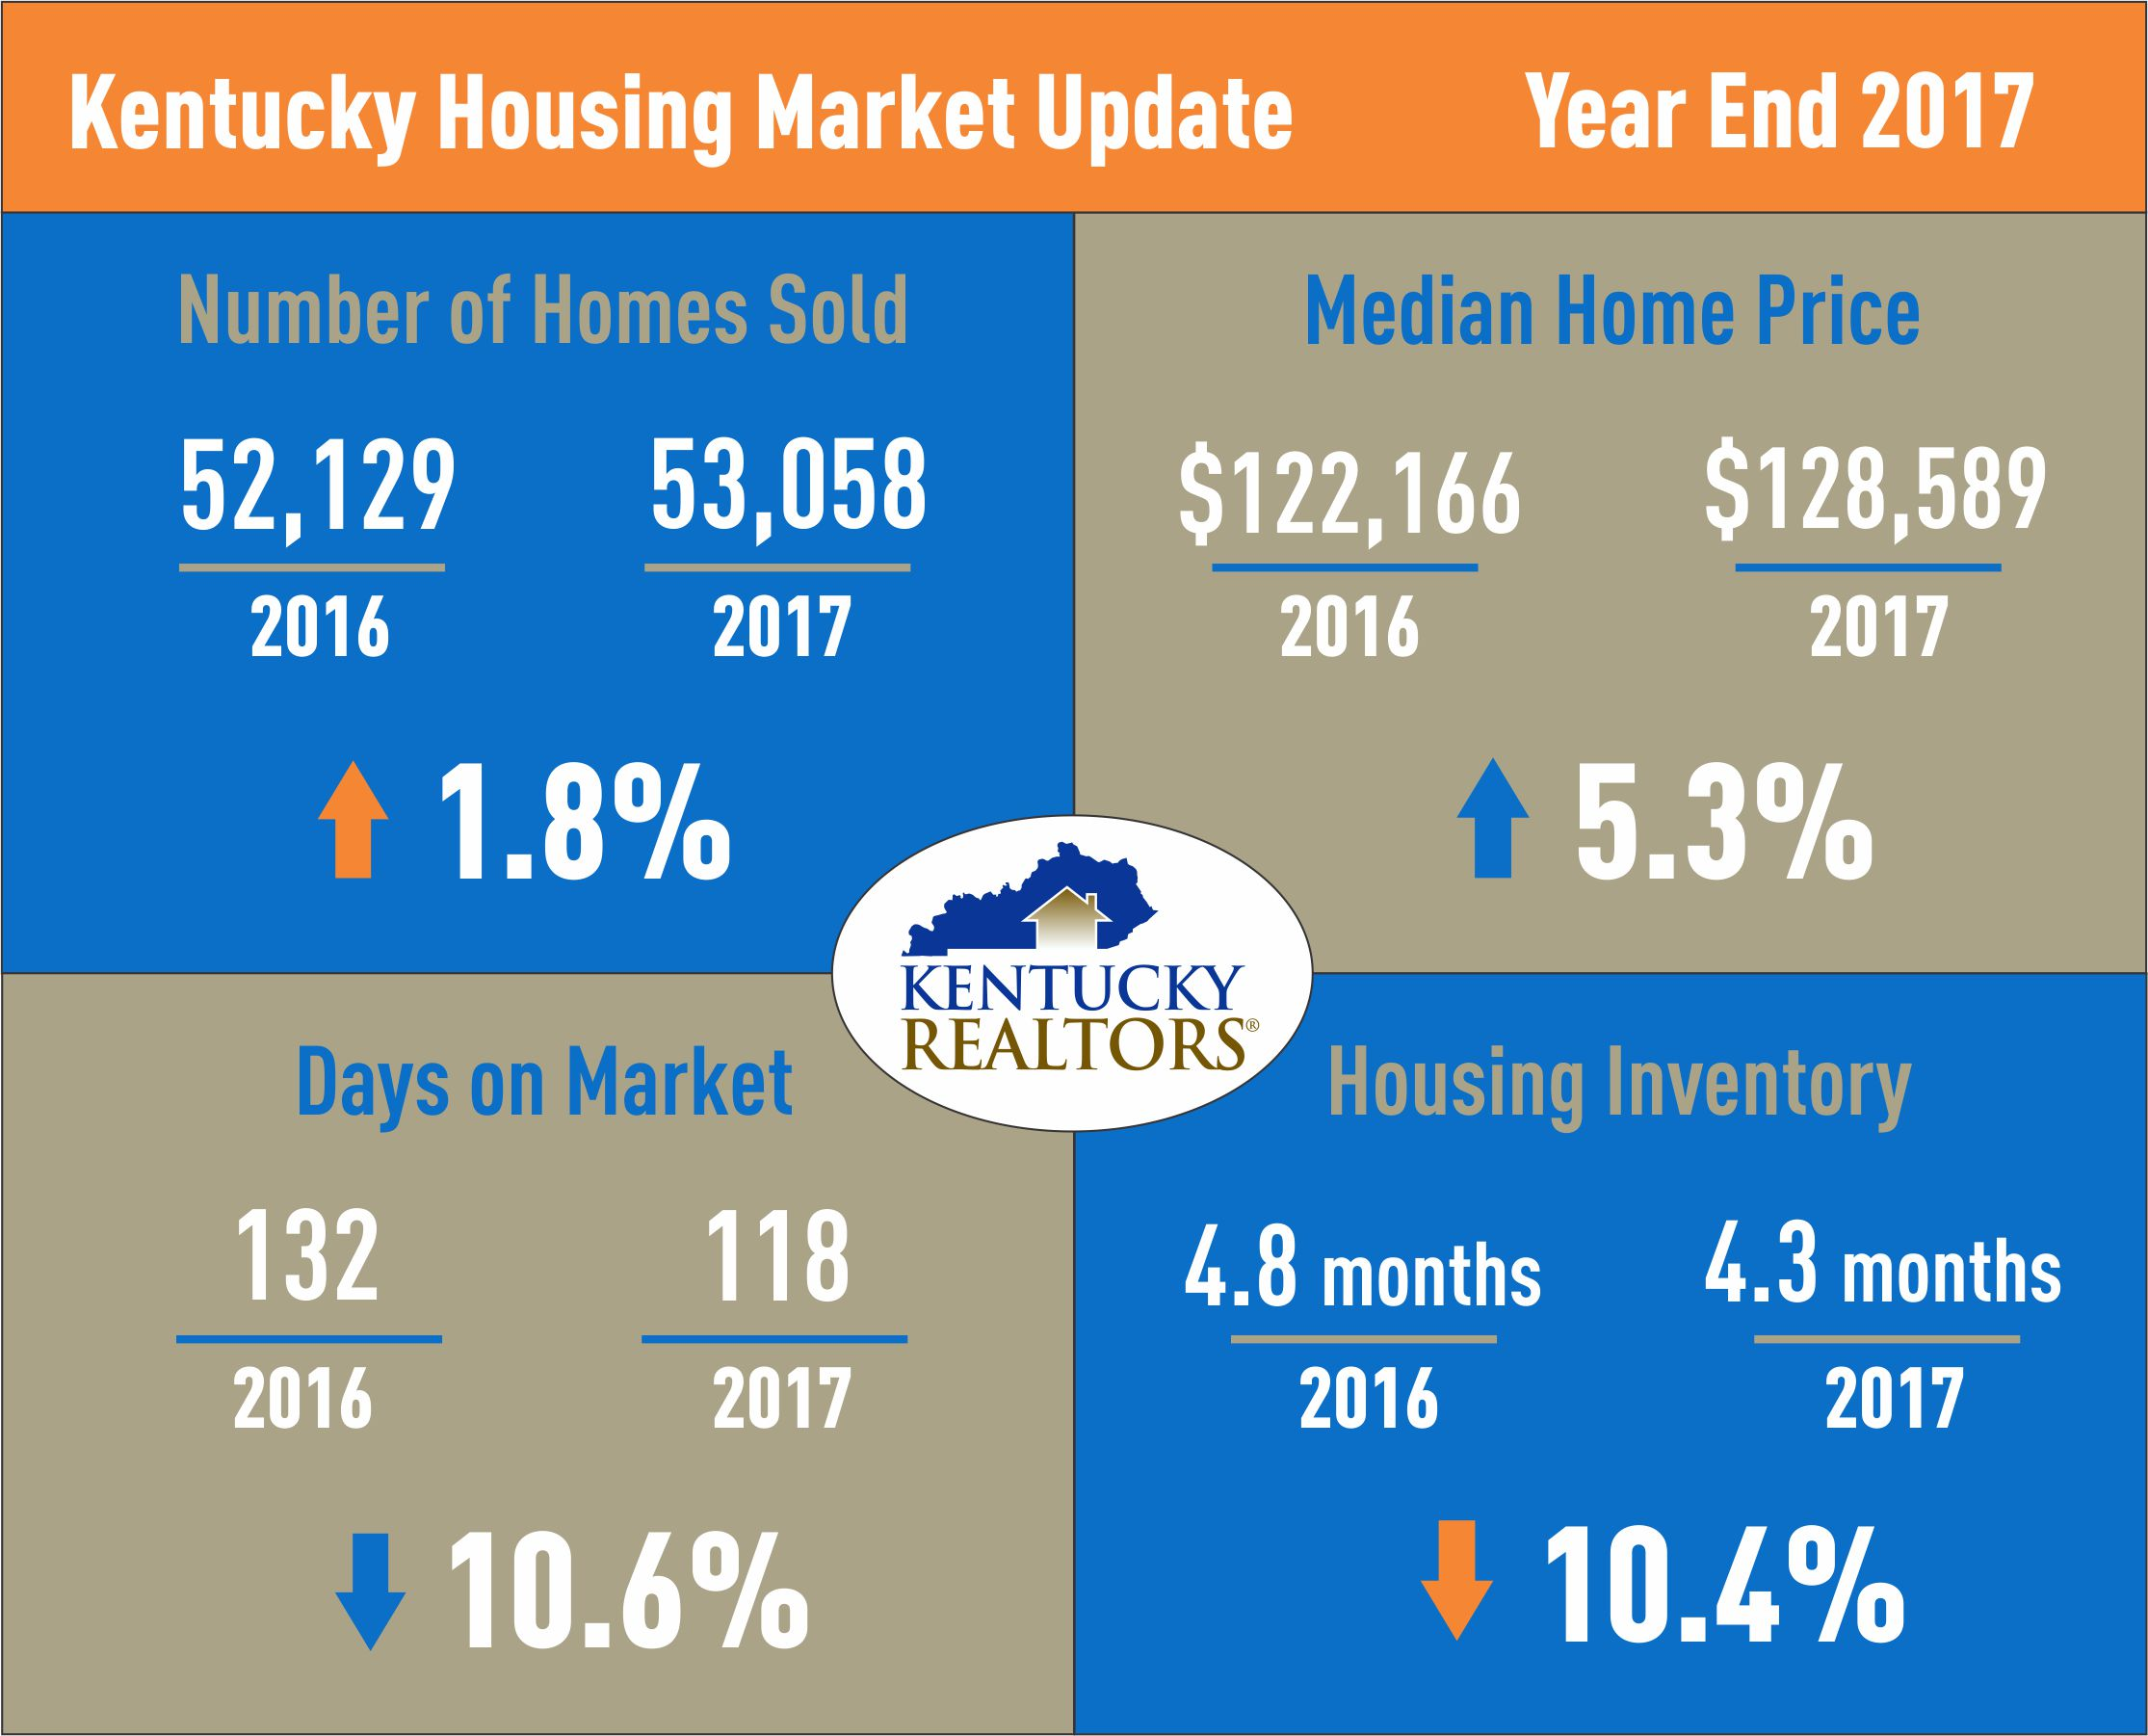 Kentucky Housing Market Update 2017